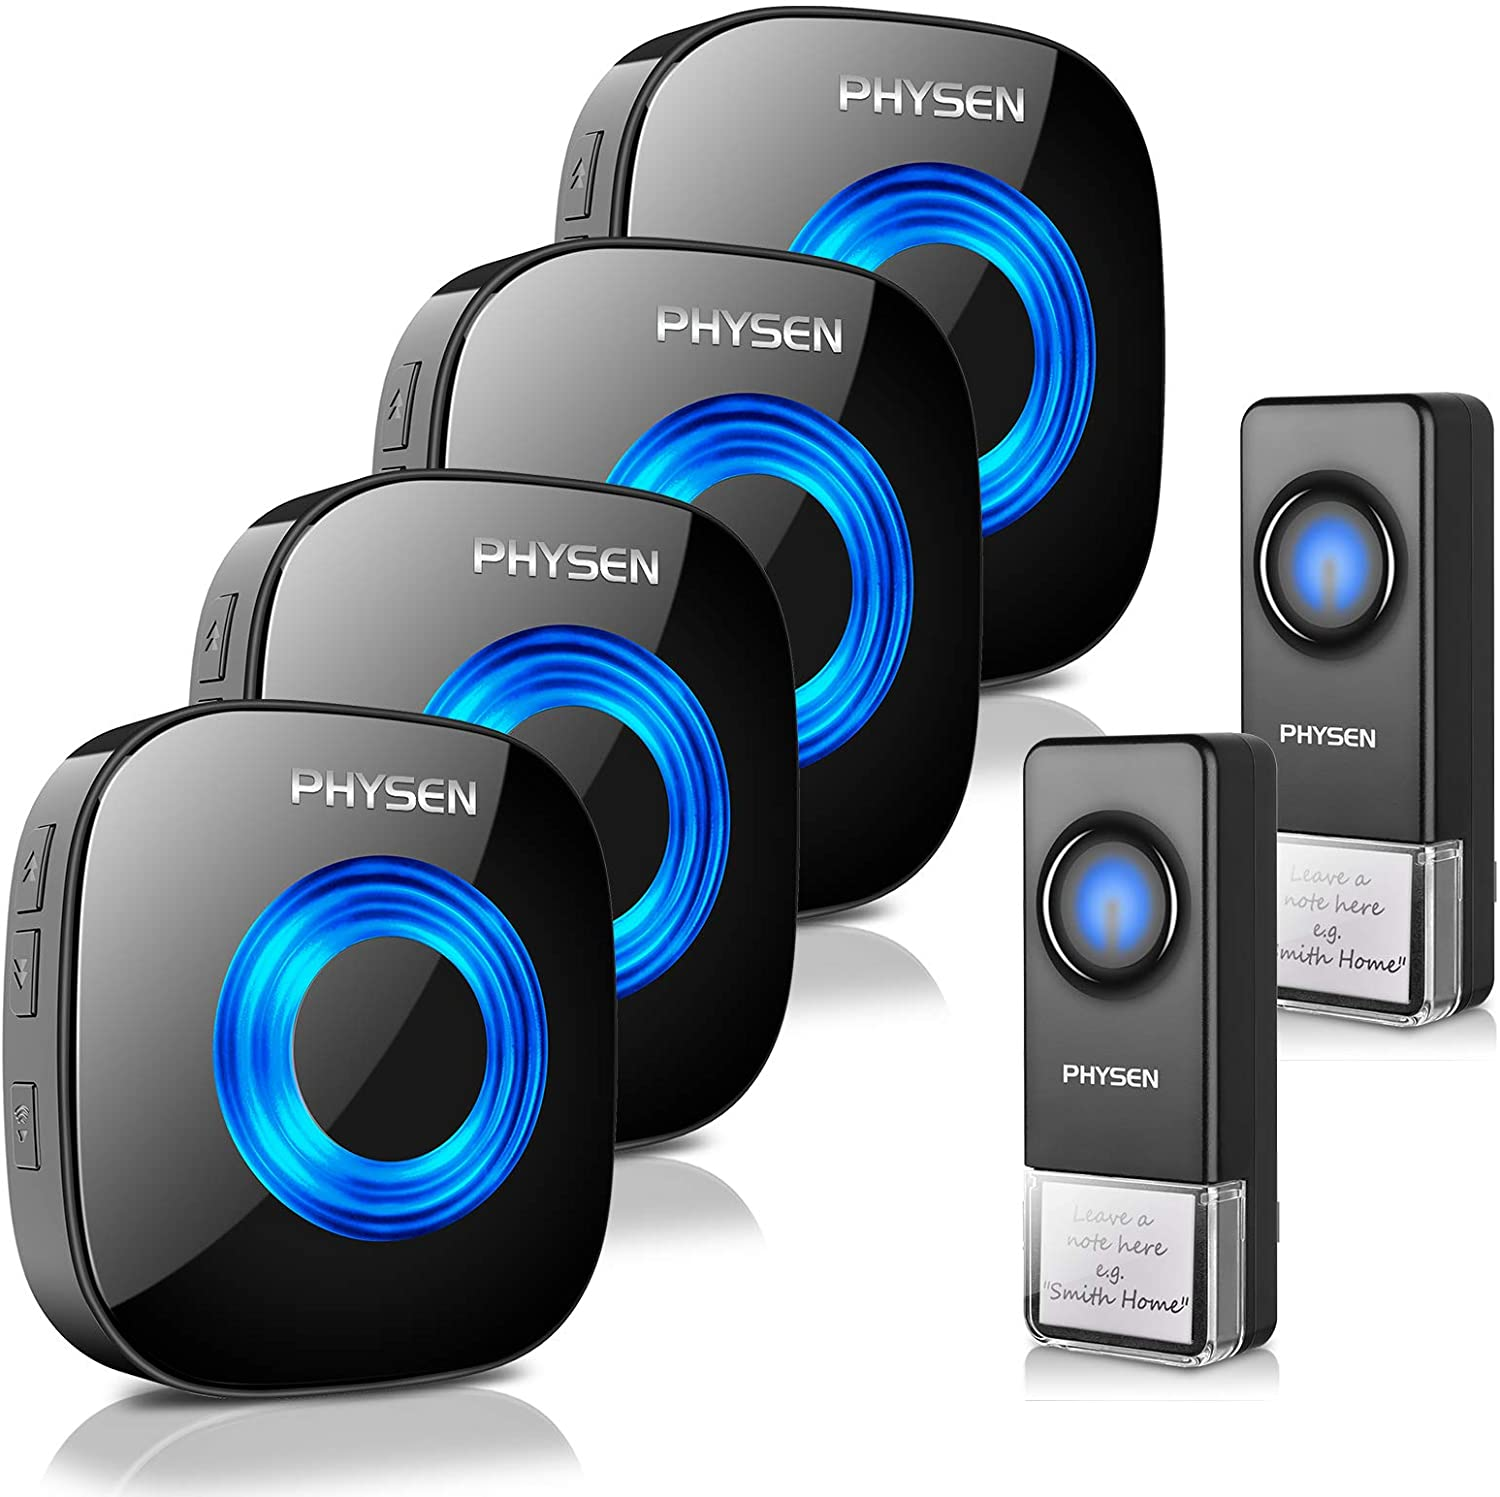 Wireless Max 79% OFF Doorbell PHYSEN Waterproof Door Mute Chimes Free shipping Mode with